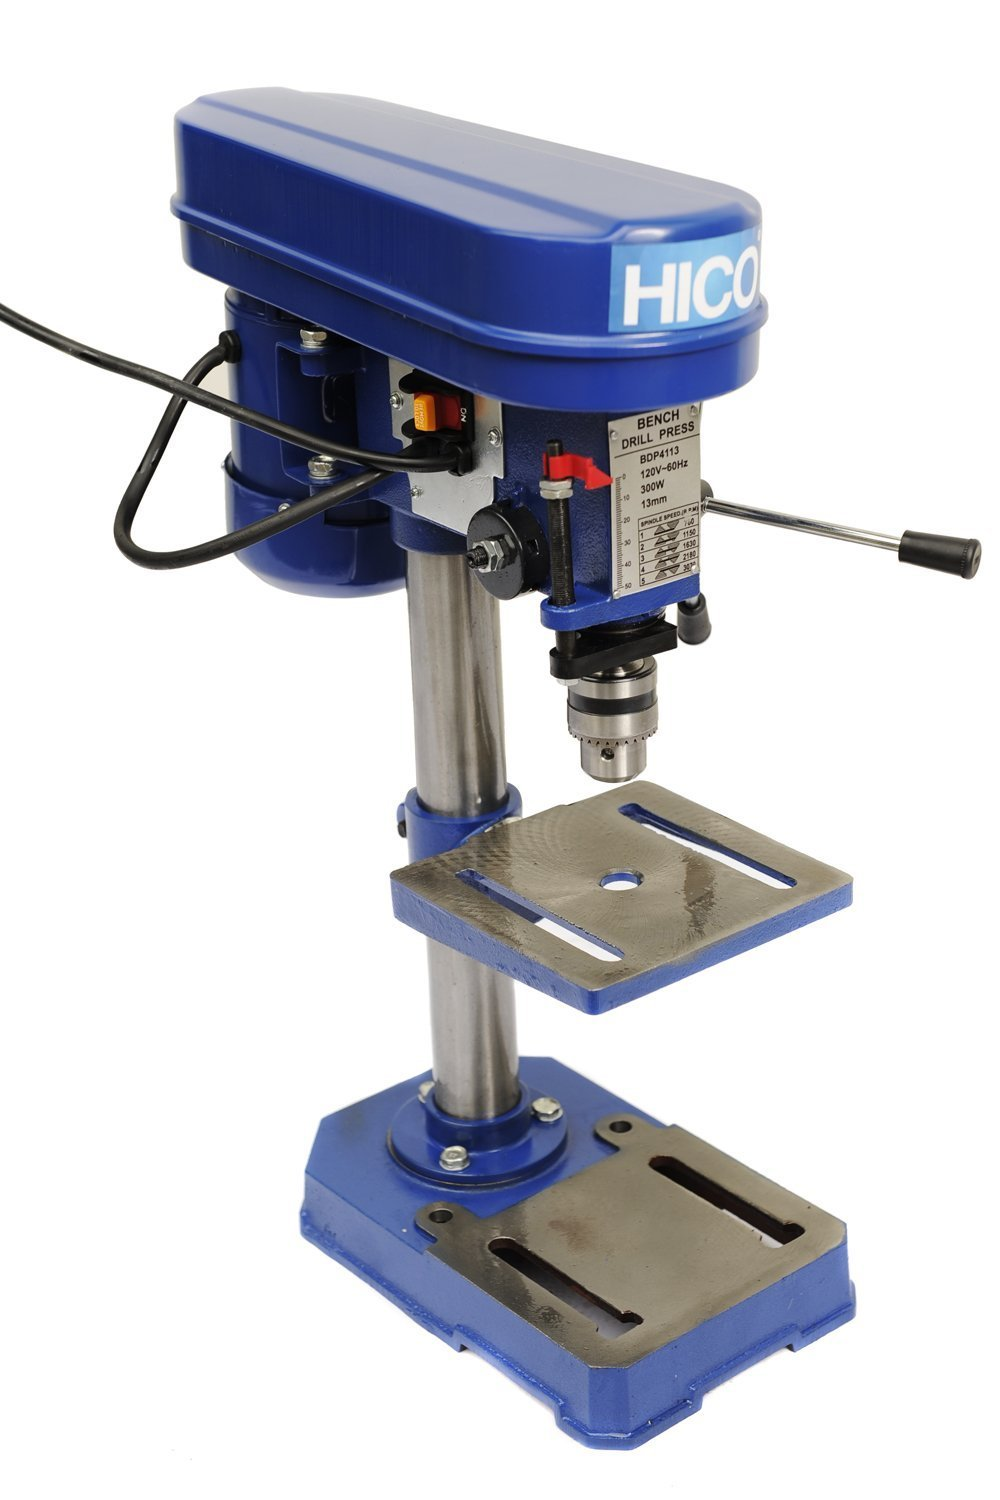 HICO Bench Top Drill Press - 8 Inch Adjustable Height, 5 Speed Motor, Cast Iron Table DP4113